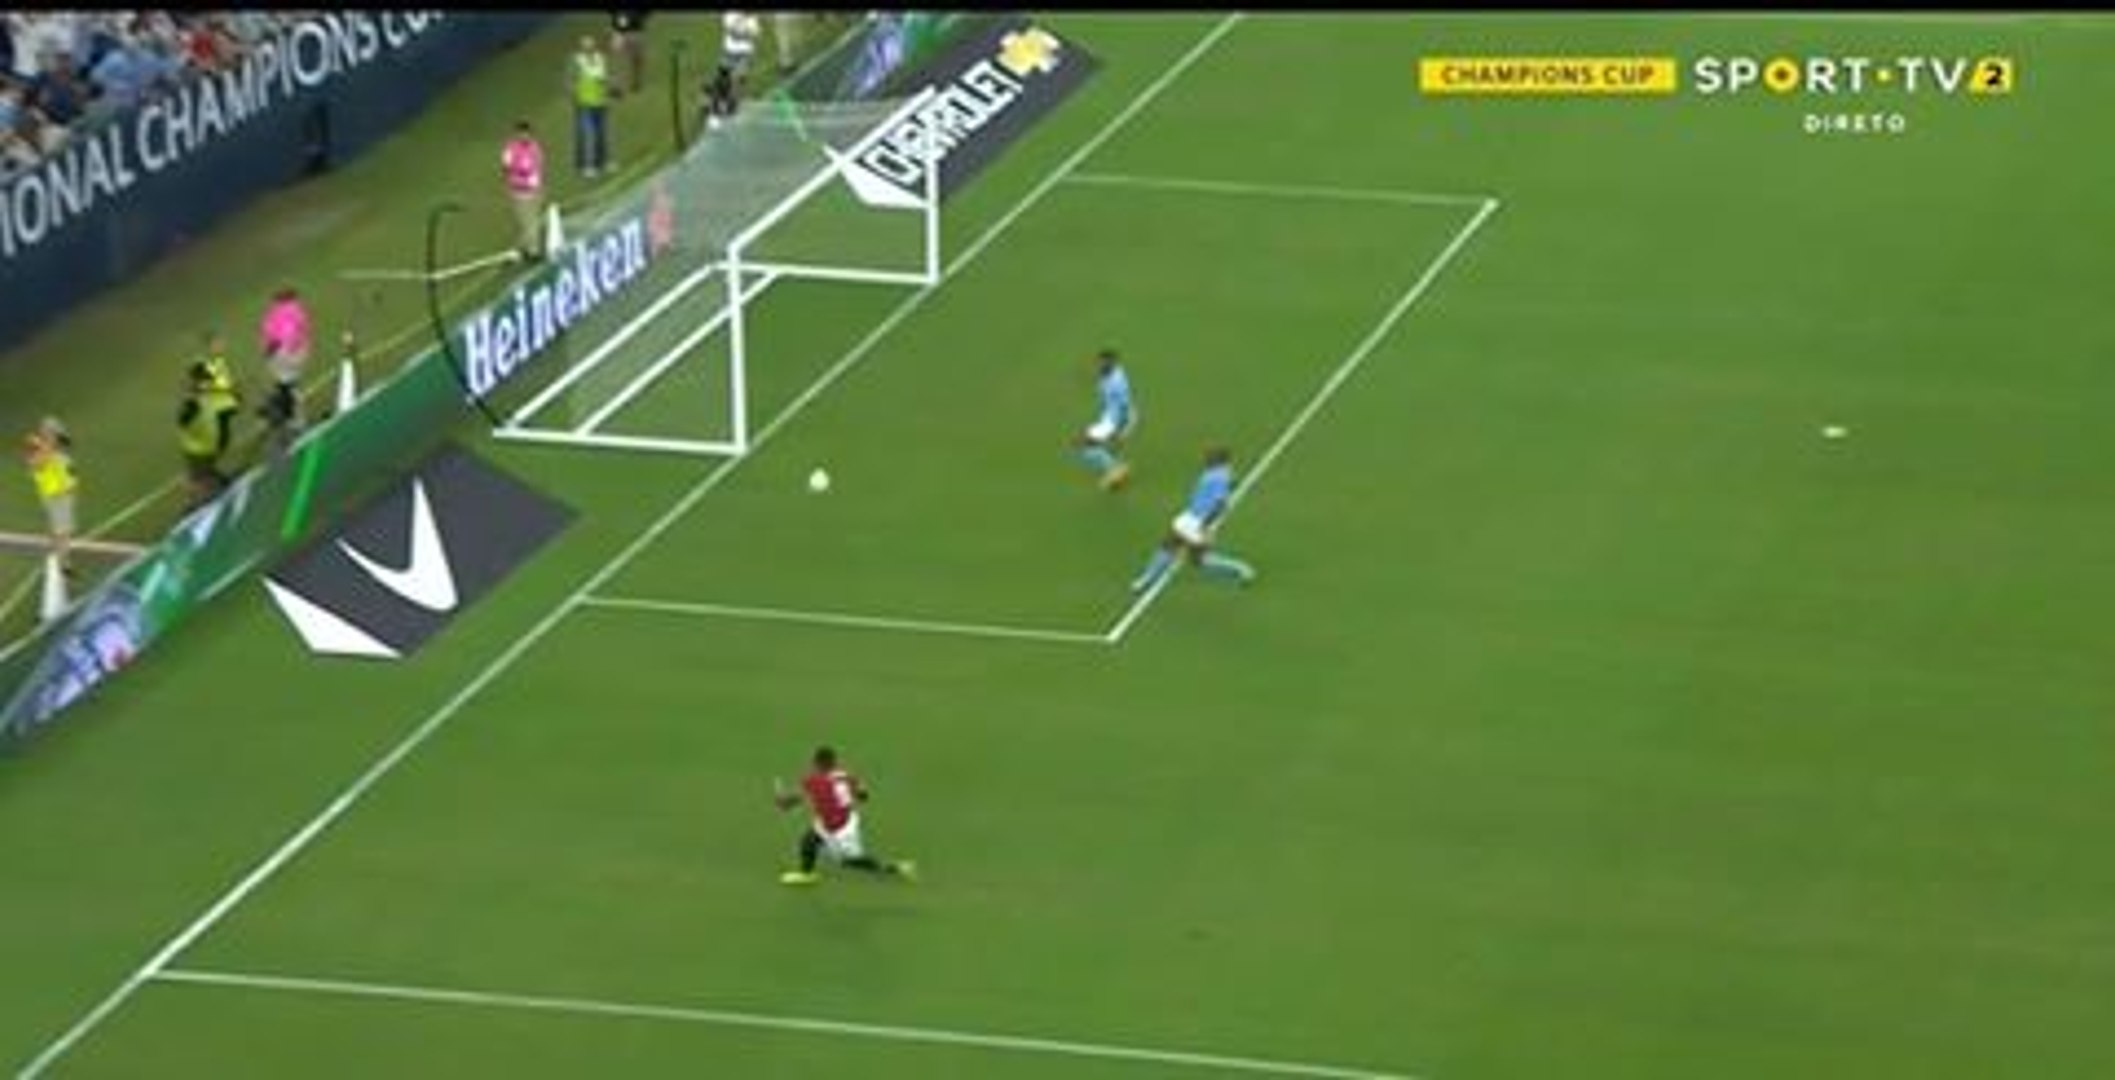 Manchester United vs Manchester City 2-0 Goals & Highlights - INTERNATIONAL CHAMPIONS CUP 21-7-2